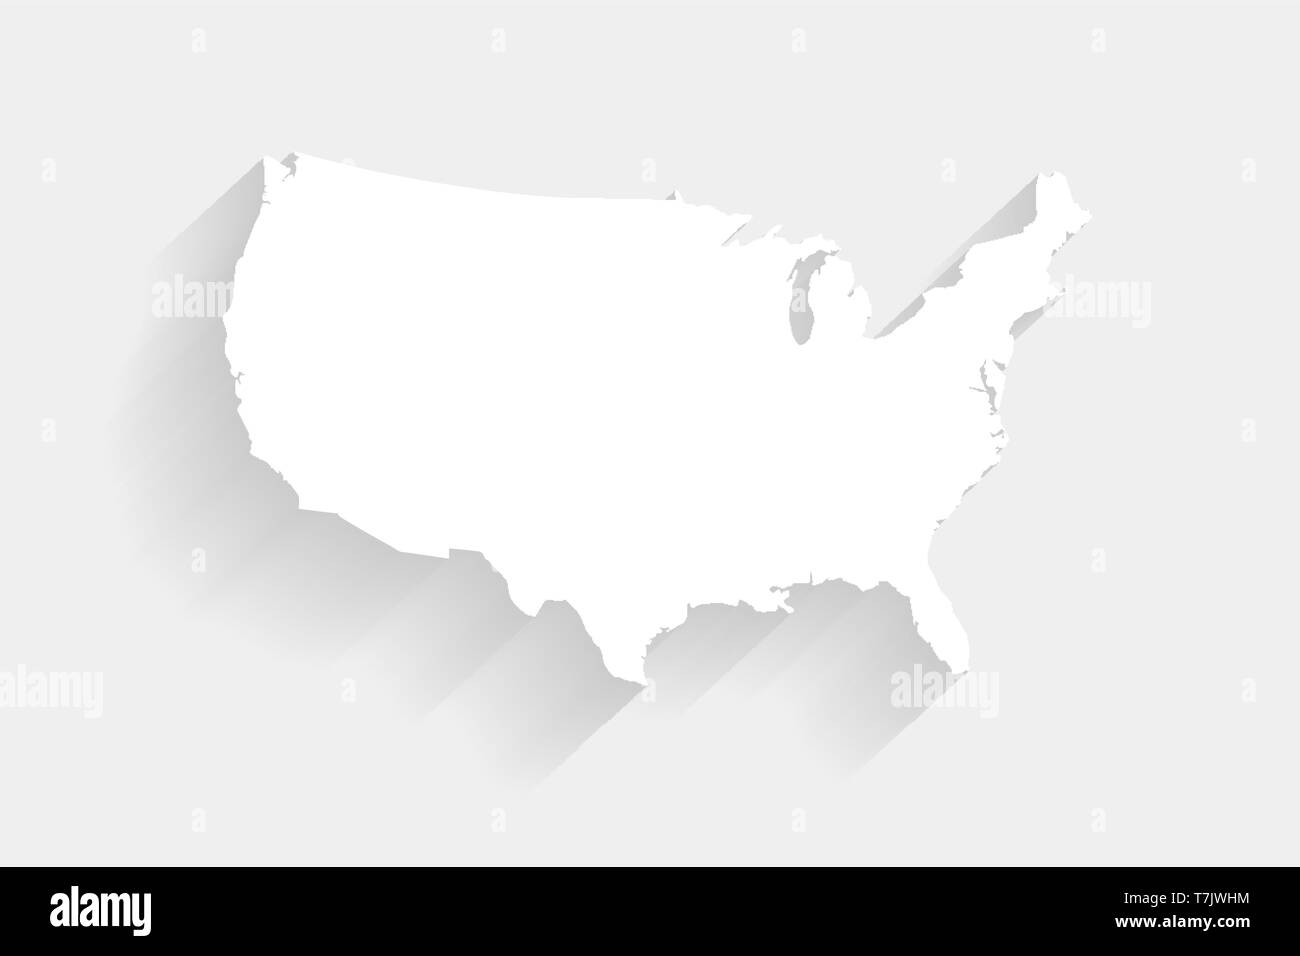 Simple white United States map on gray background, vector ... on uganda map gray, europe map gray, philippines map gray, florida map gray, world map gray, canada map gray, singapore map gray, colombia map gray, puerto rico map gray, oceania map gray, virginia map gray, south africa map gray, kazakhstan map gray, chile map gray, middle east map gray, massachusetts map gray, atlantic ocean map gray, latin america map gray, mexico map gray, asia map gray,